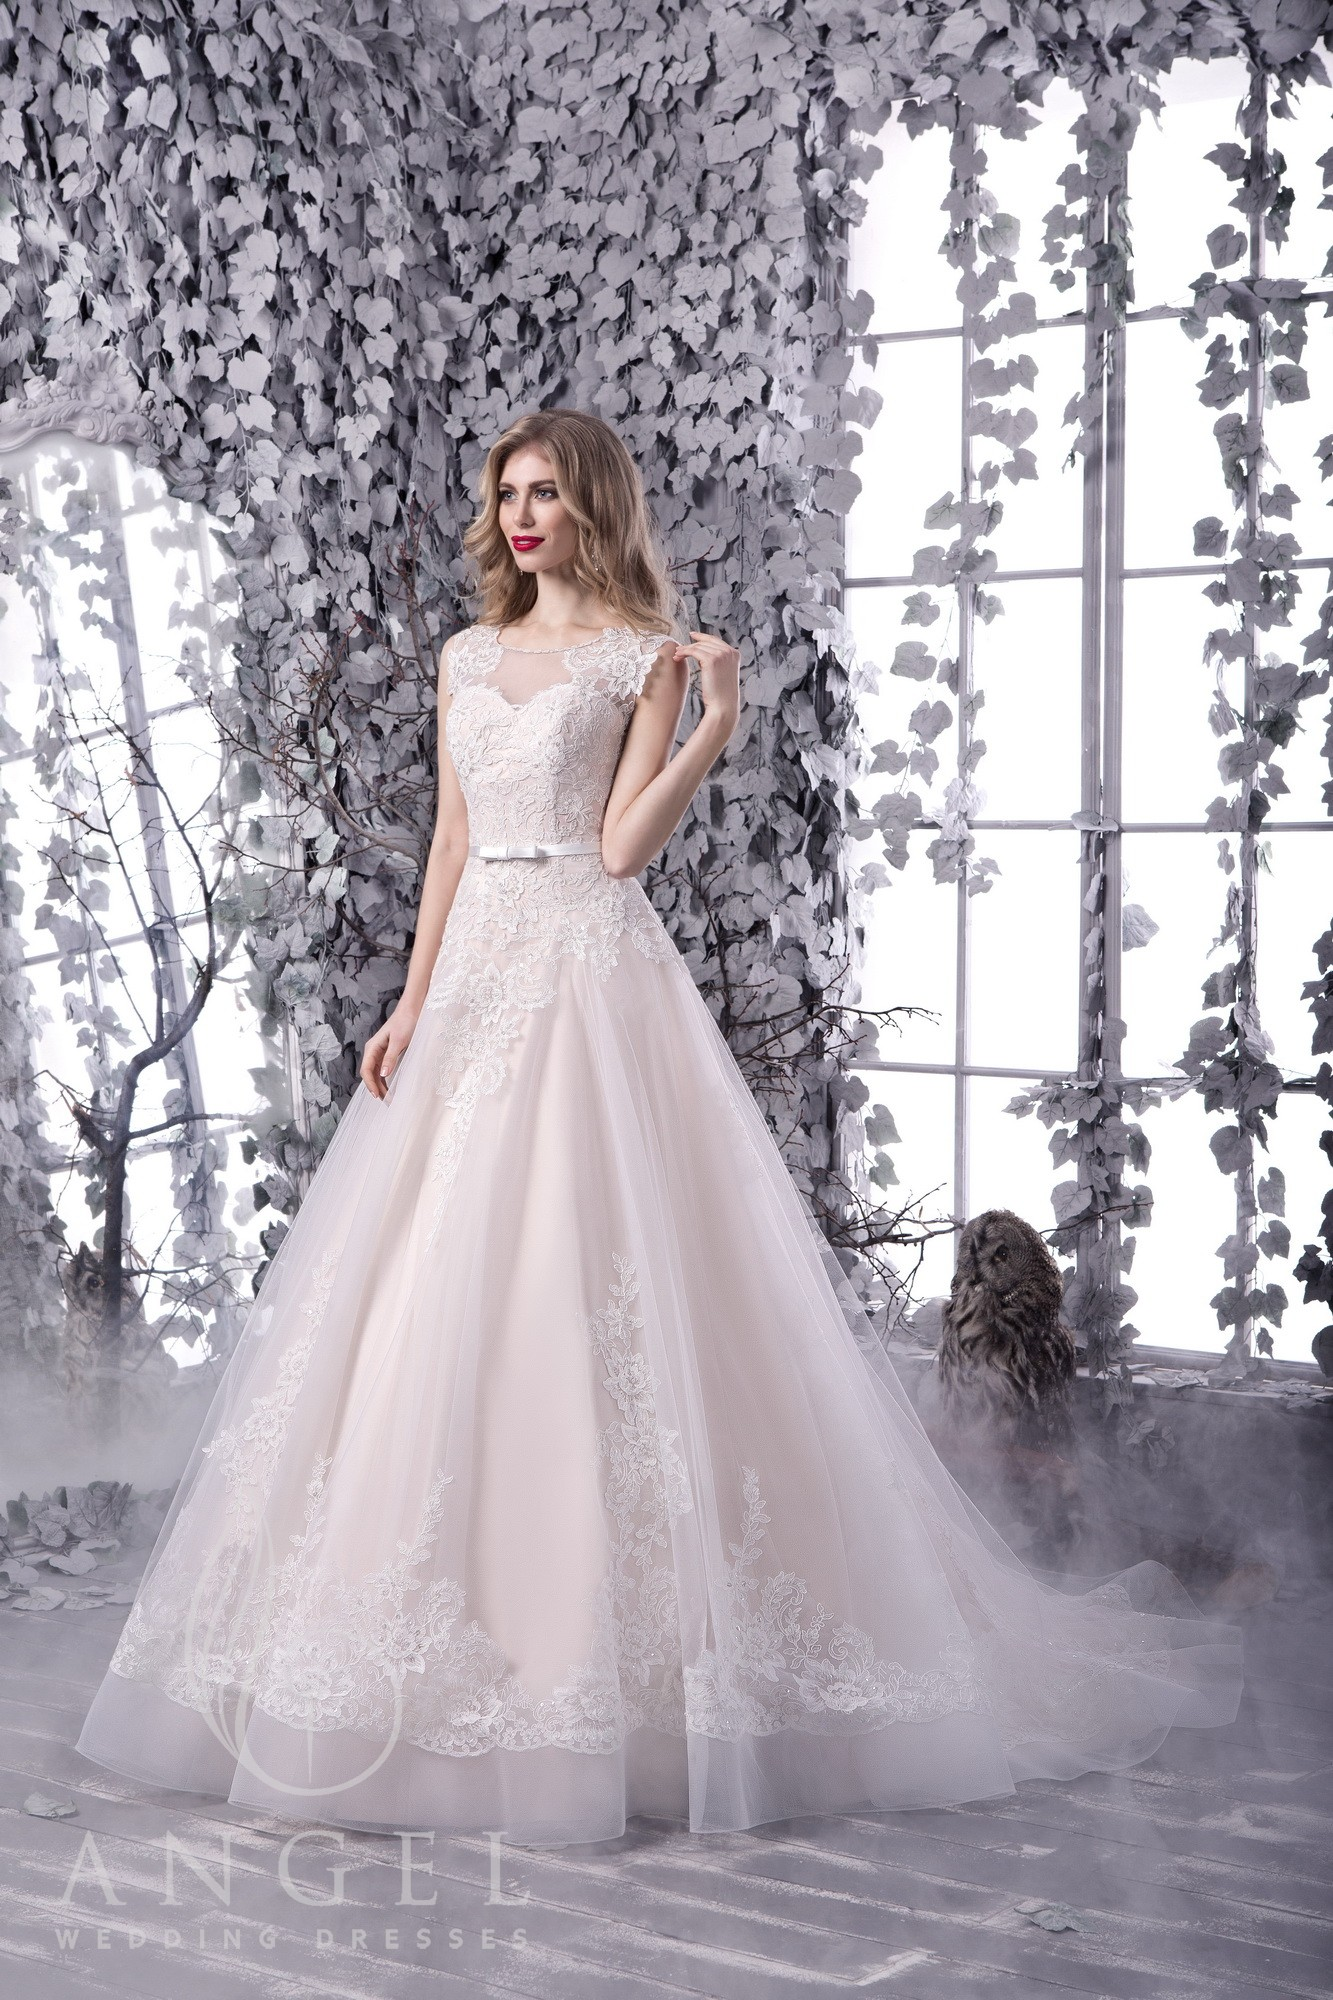 https://angel-novias.com/images/stories/virtuemart/product/ILIADA.jpg